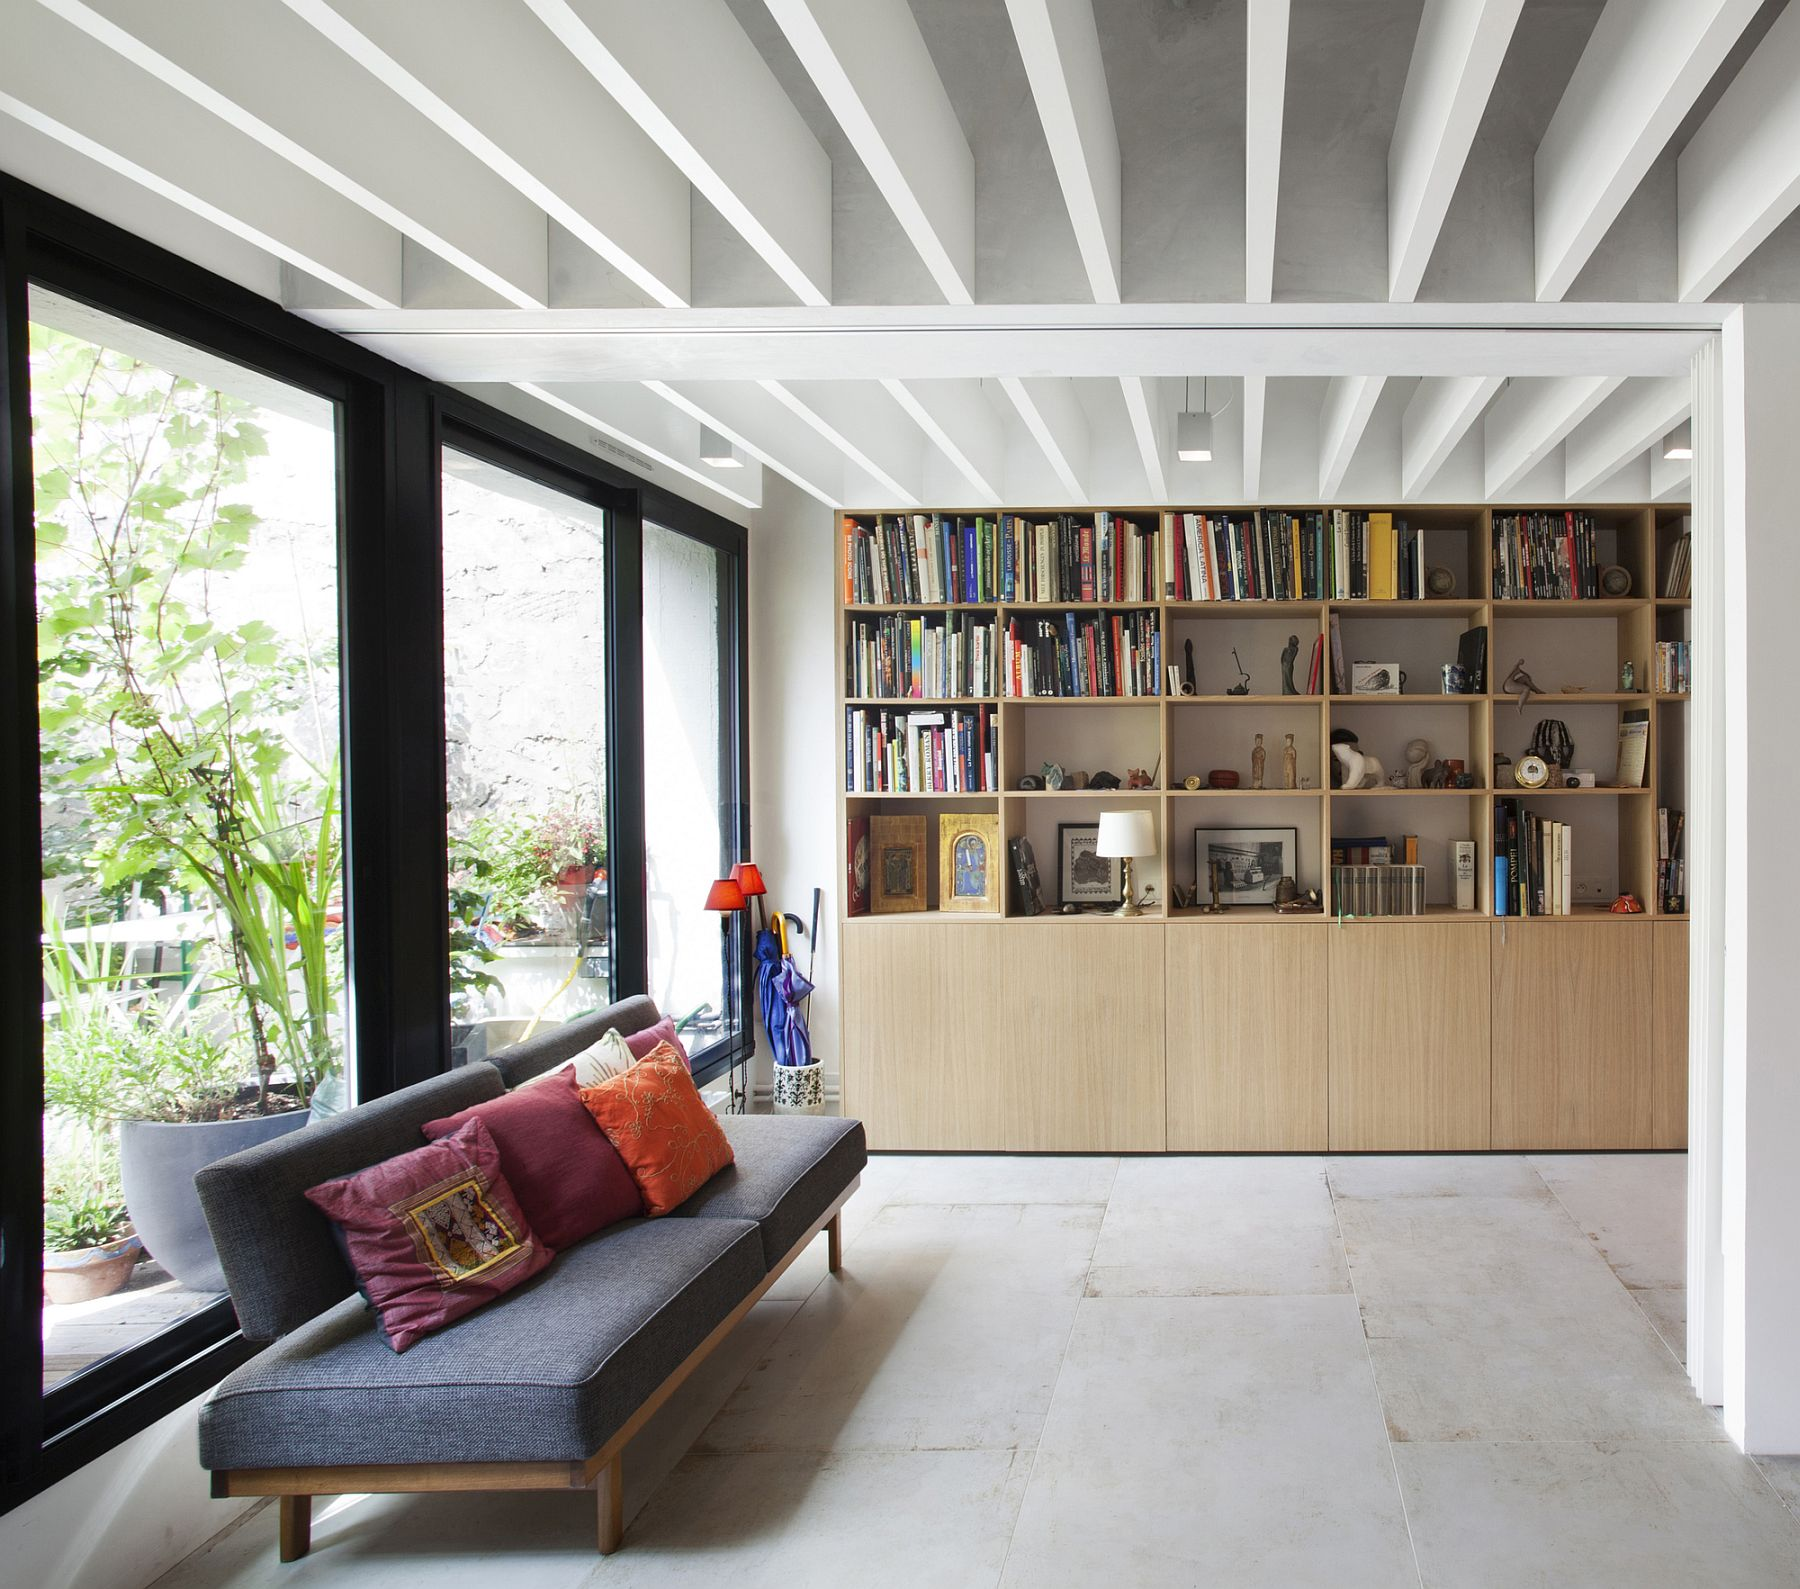 Smart decor and bookshelf add color and class to the revamped Paris apartment